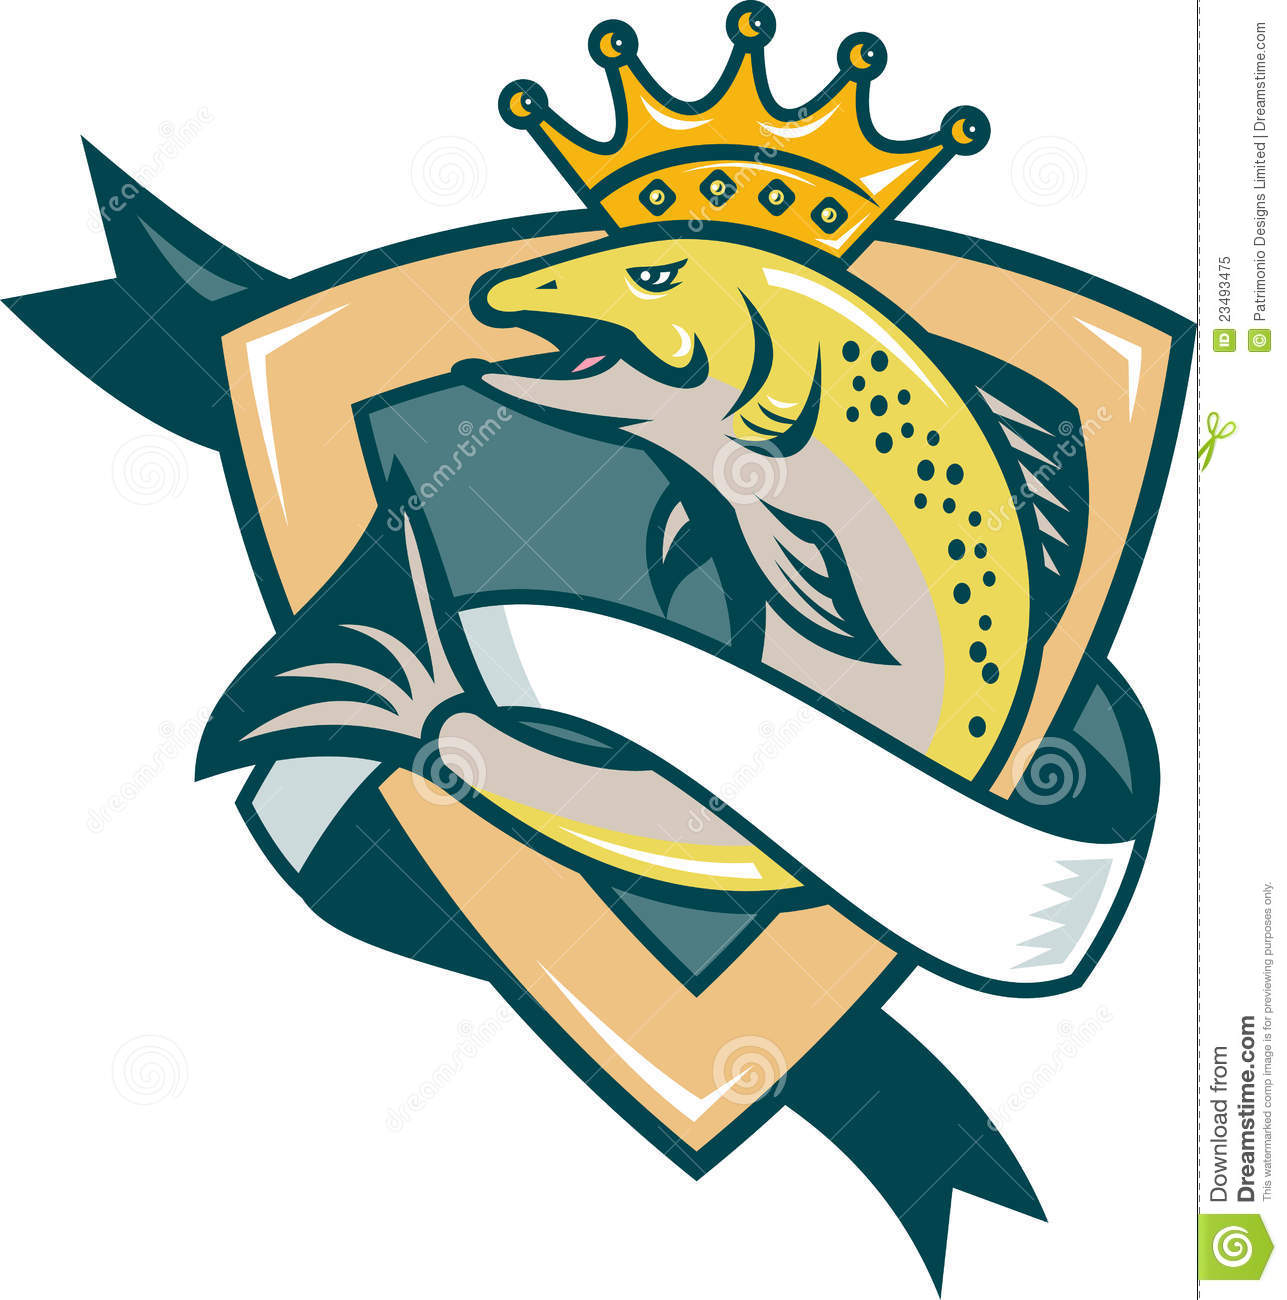 King salmon fish jumping shield royalty free stock photo for Fishing kings free